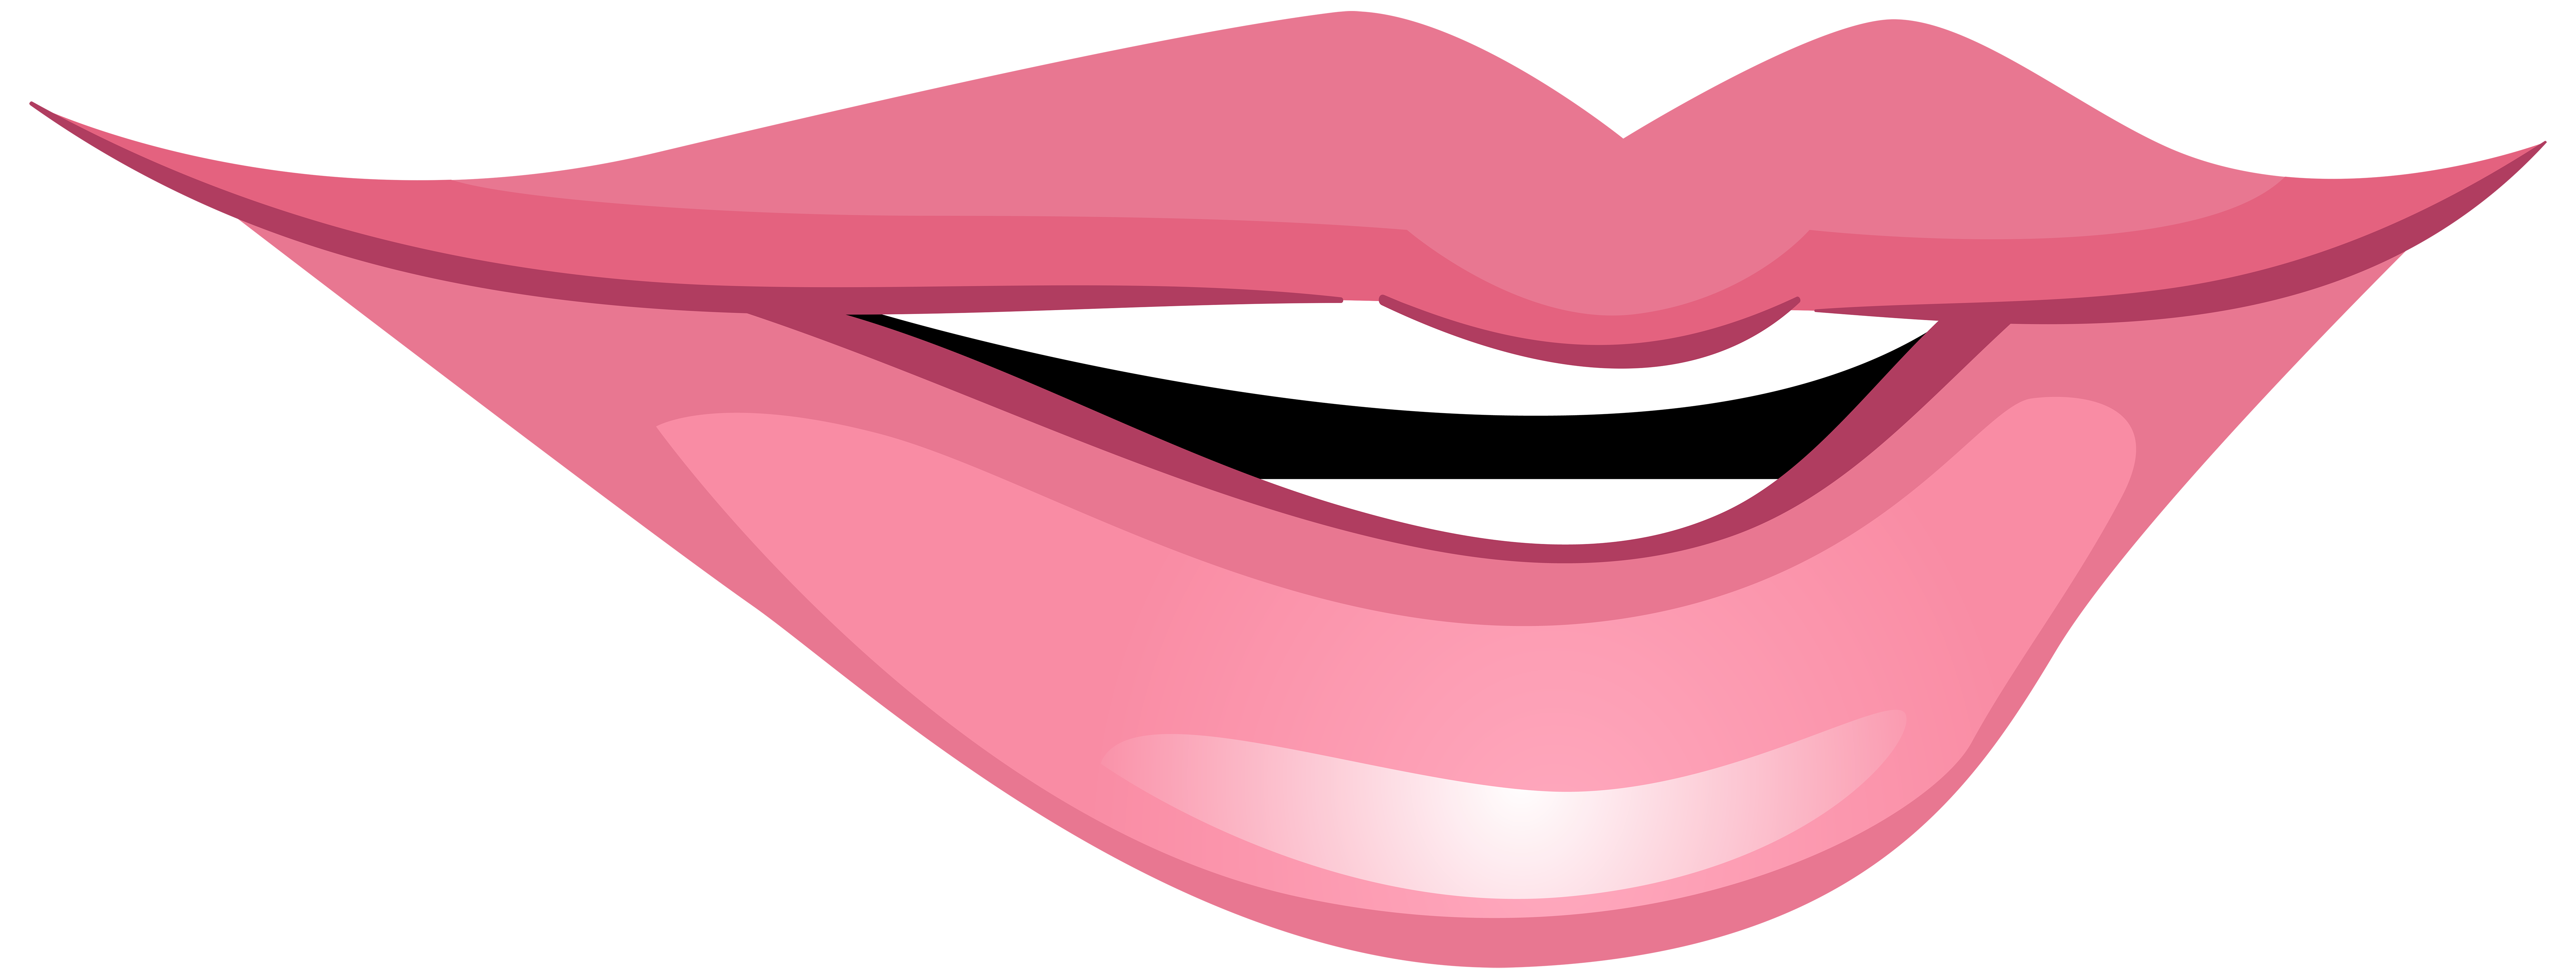 Smiling mouth png clip. Clipart cross pink